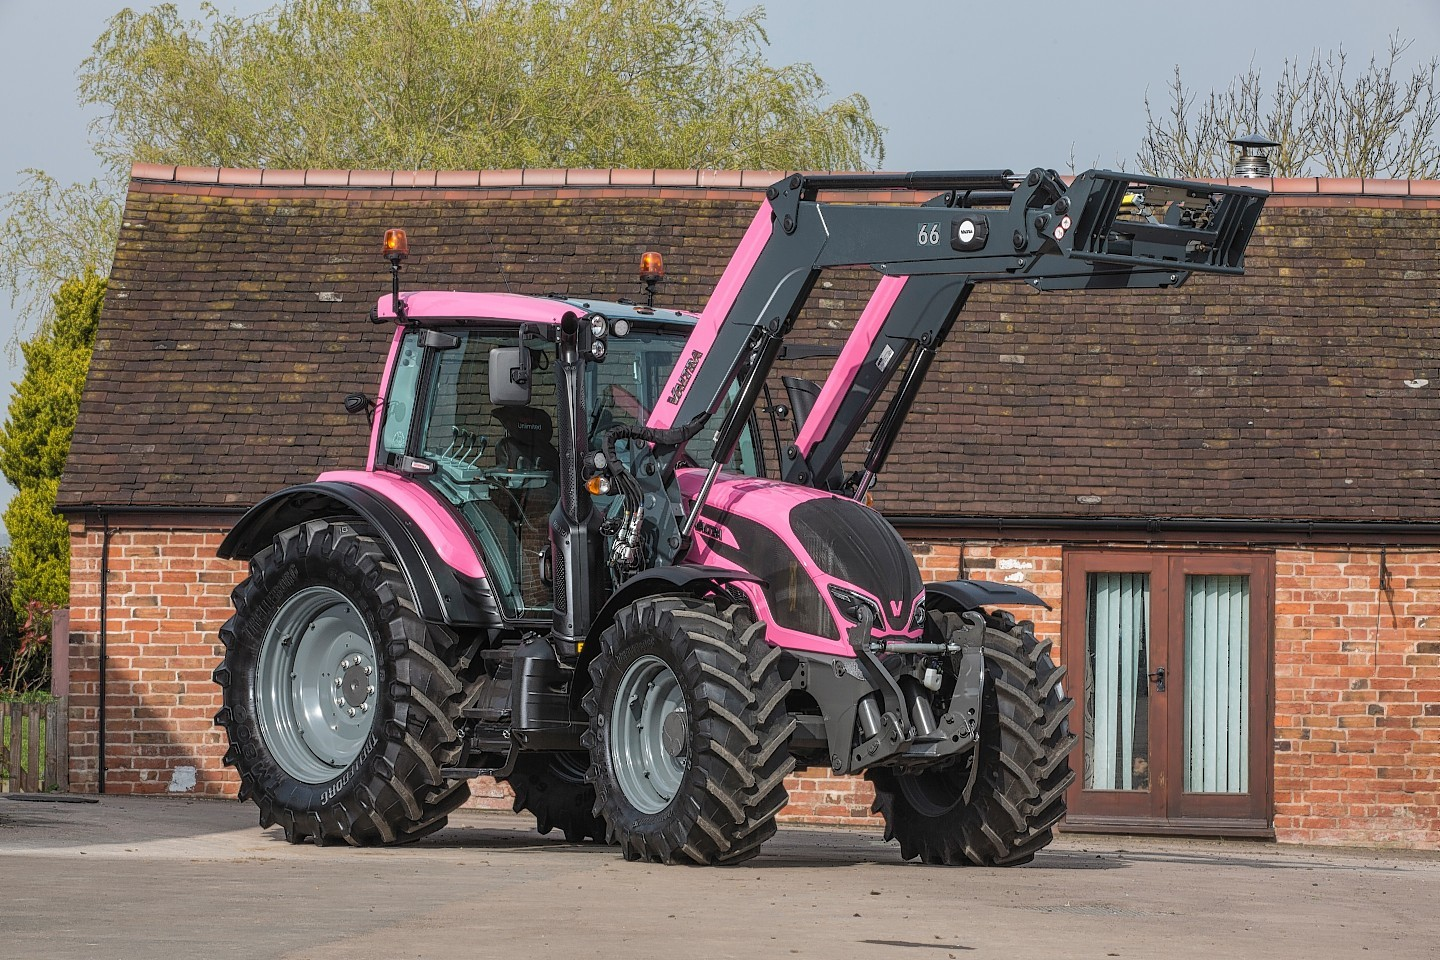 The pink Valtra tractor